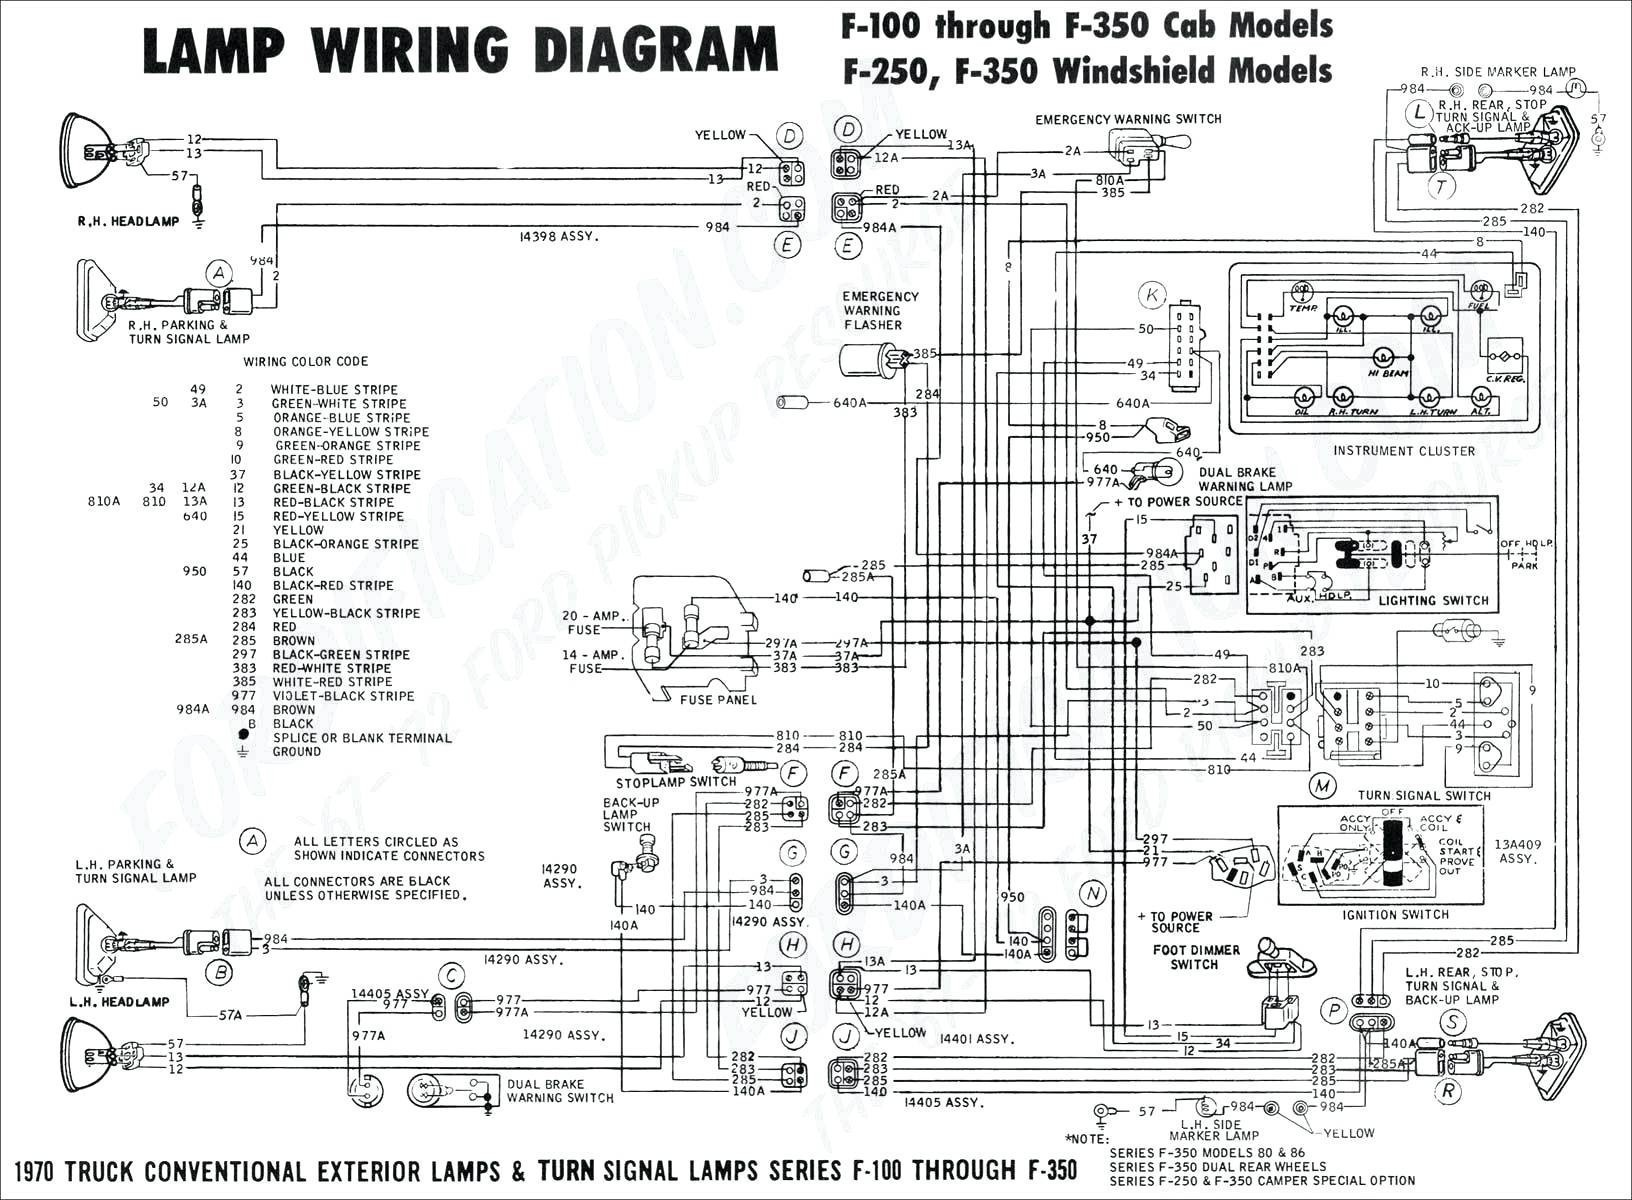 1994 f700 wiring diagram